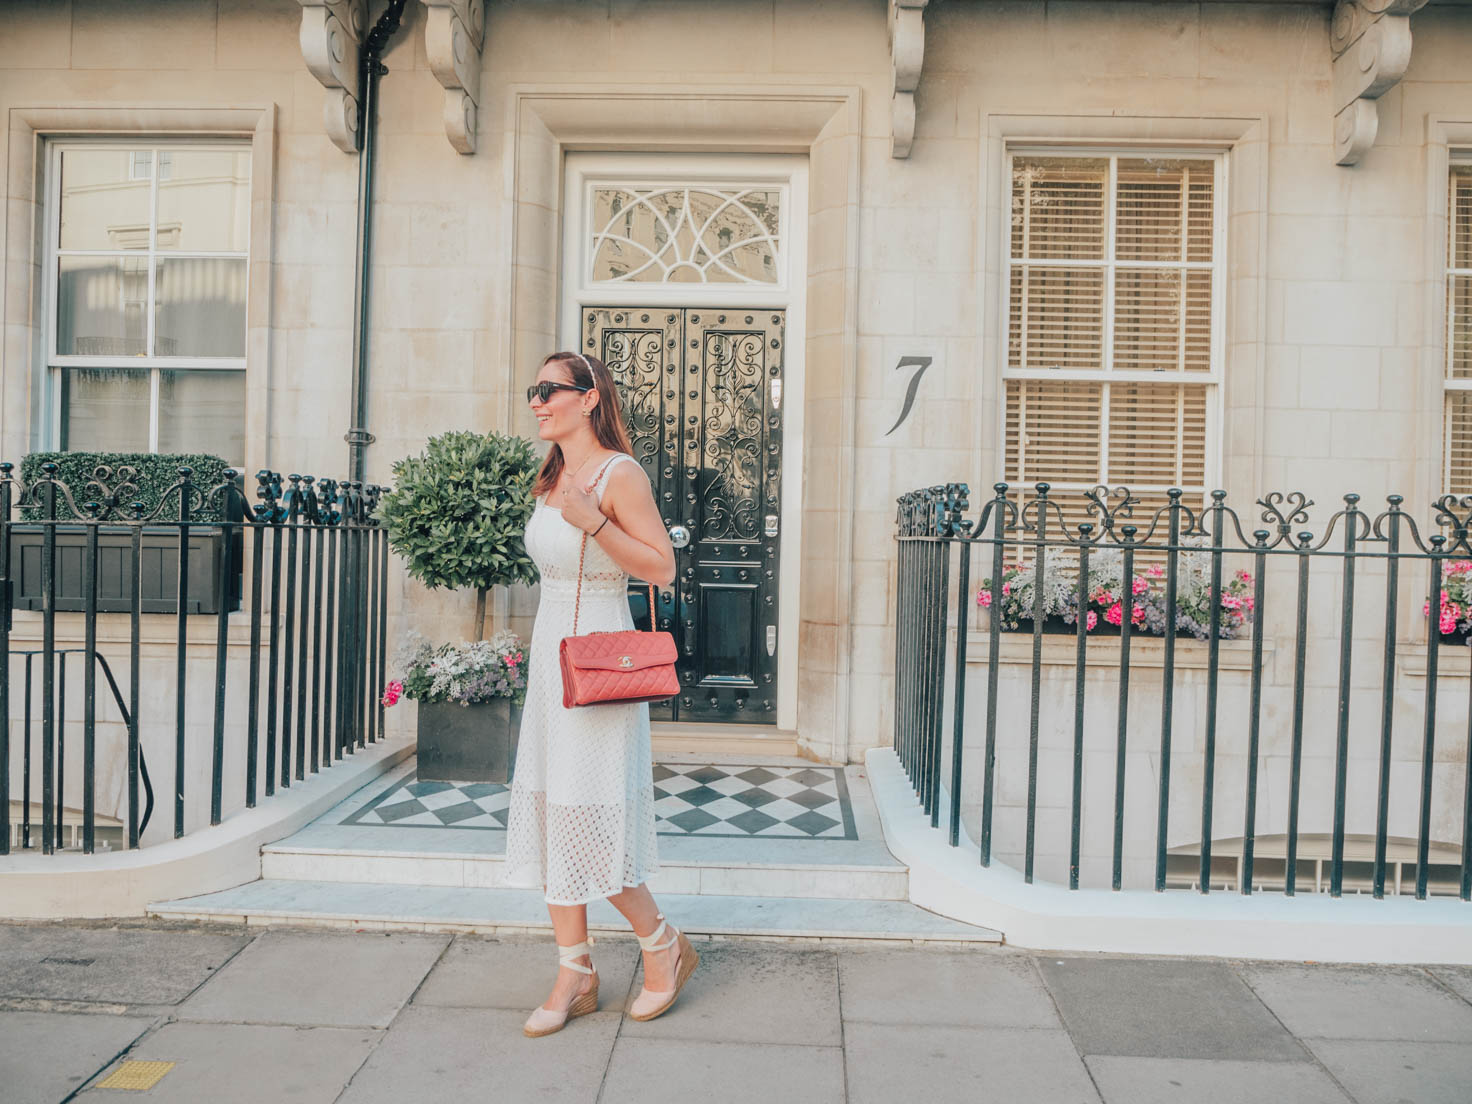 Chic Journal's Petra wears lace midi white dress by Sandro and Chanel pink handbag